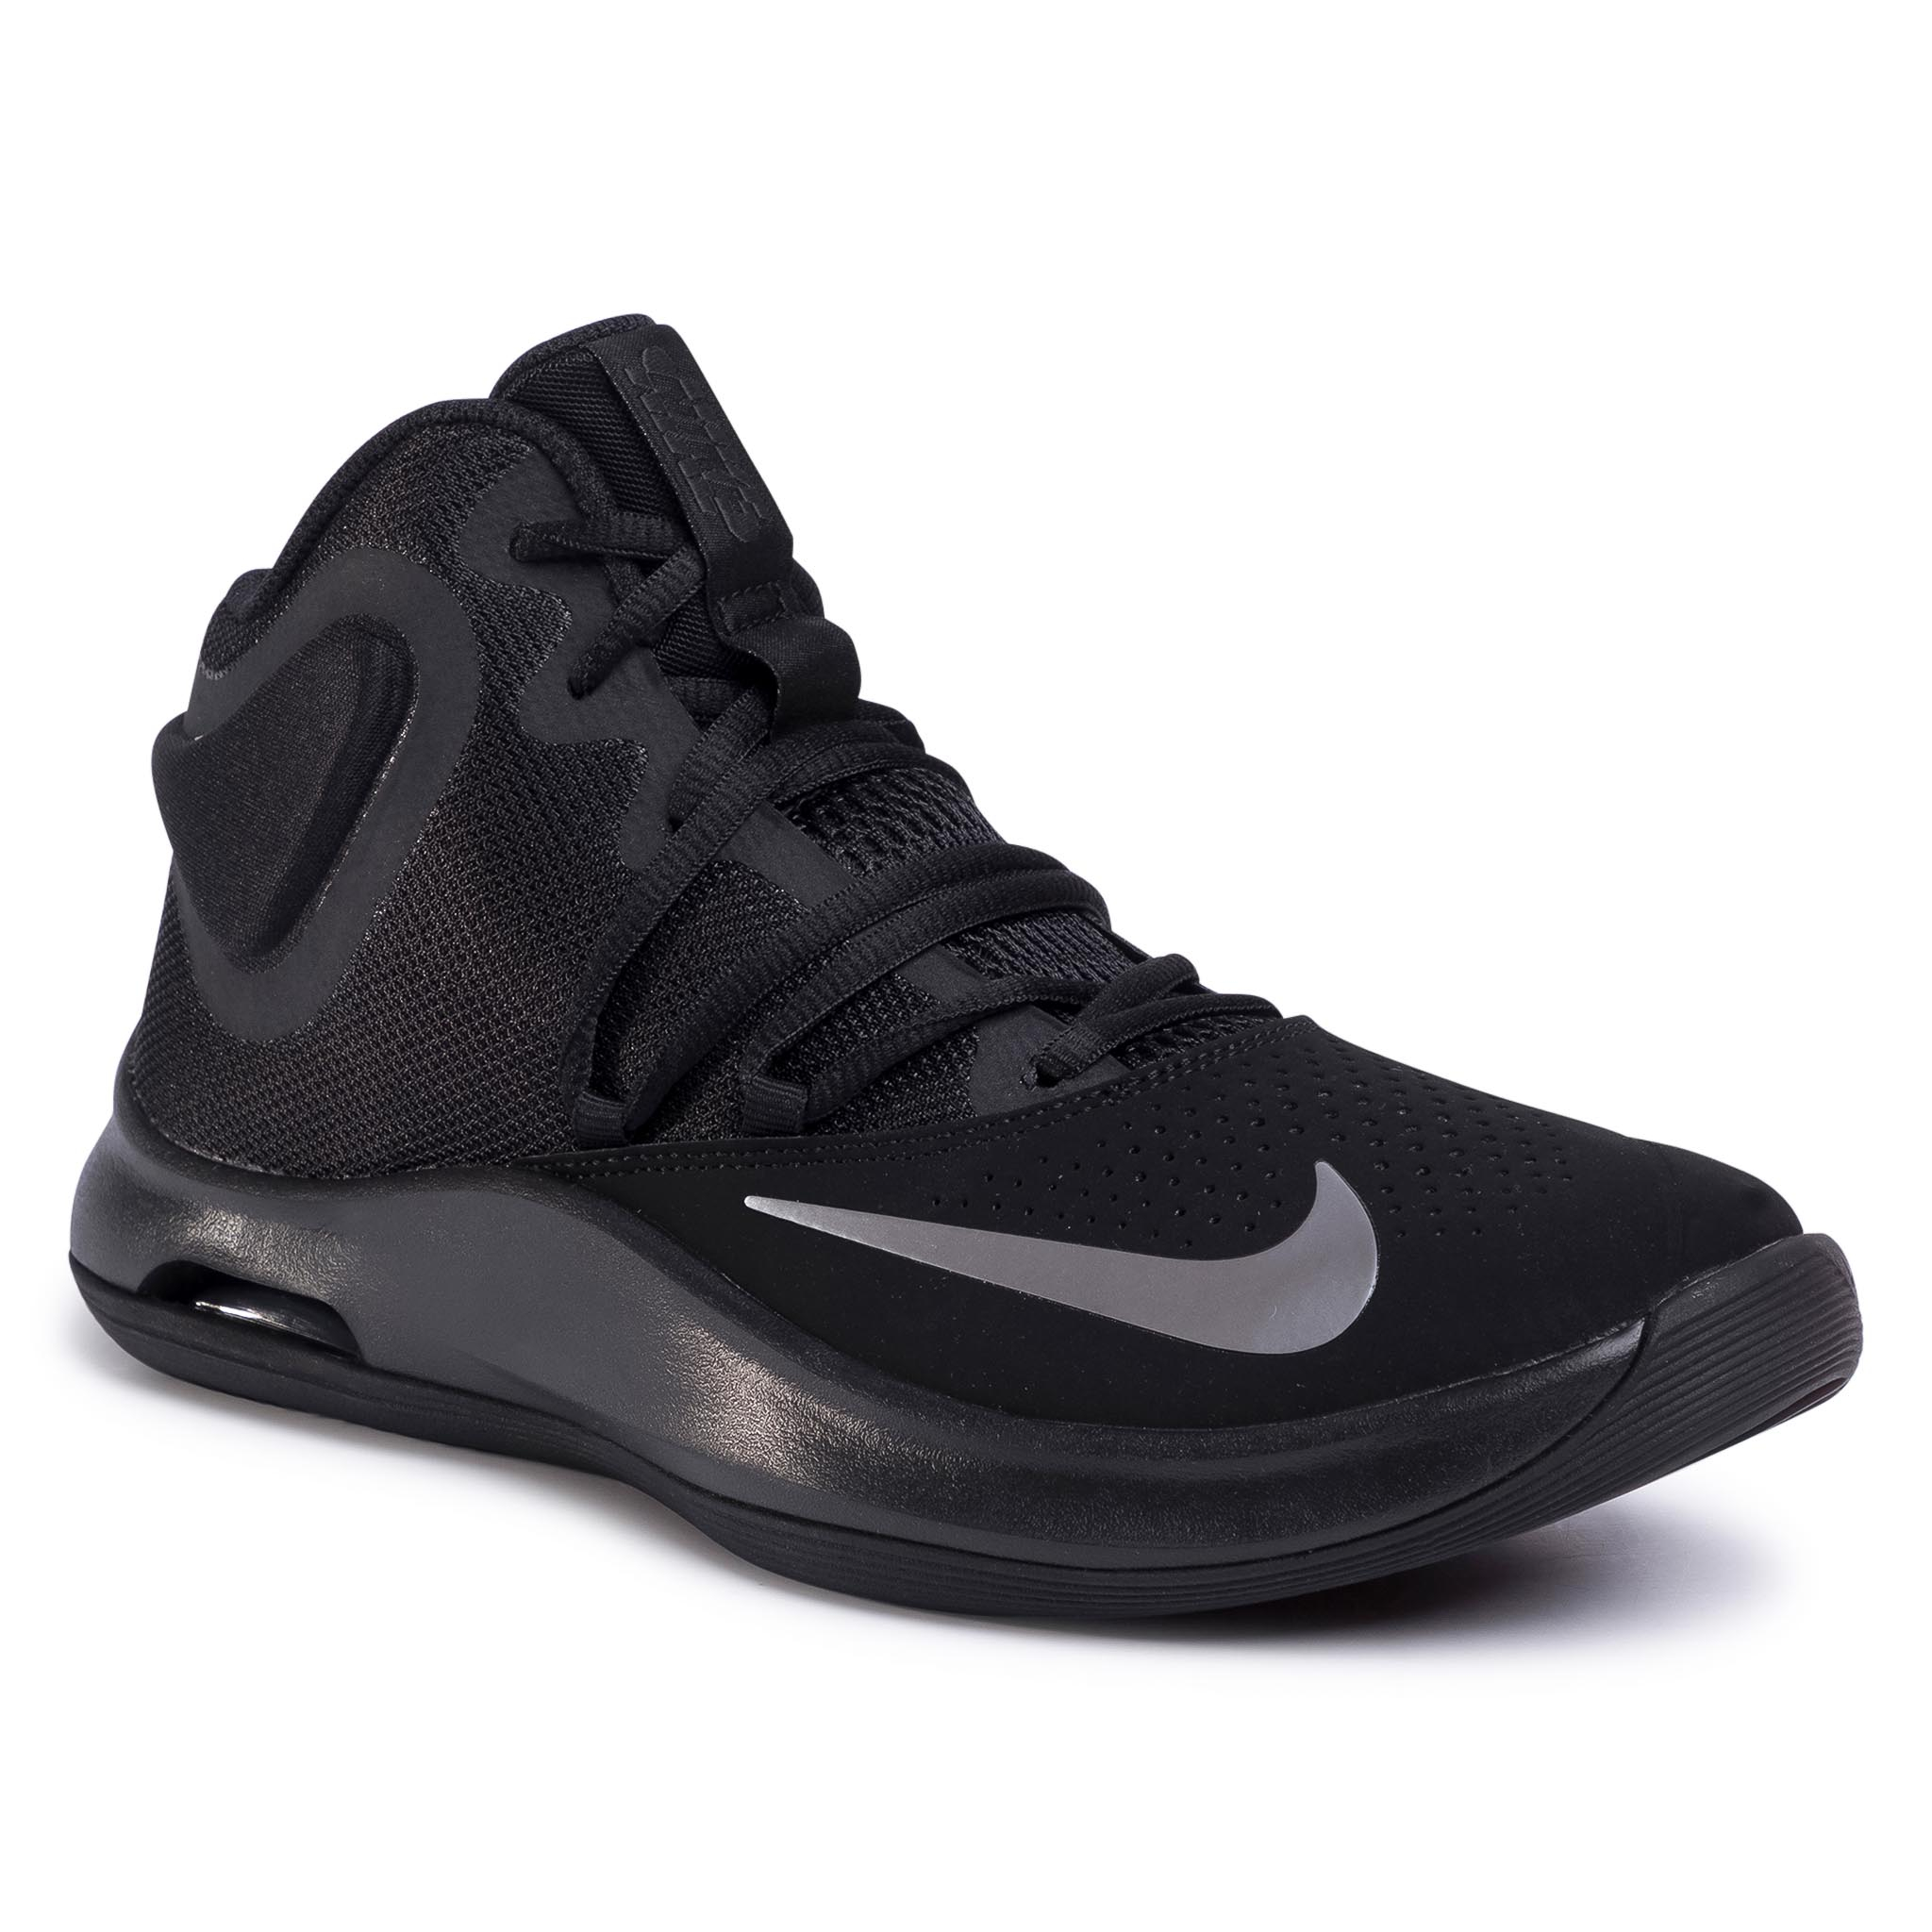 Pantofi Nike - Air Versitile Iv Nbk Cj6703 001 Black/Mtlc Cool Grey imagine epantofi.ro 2021